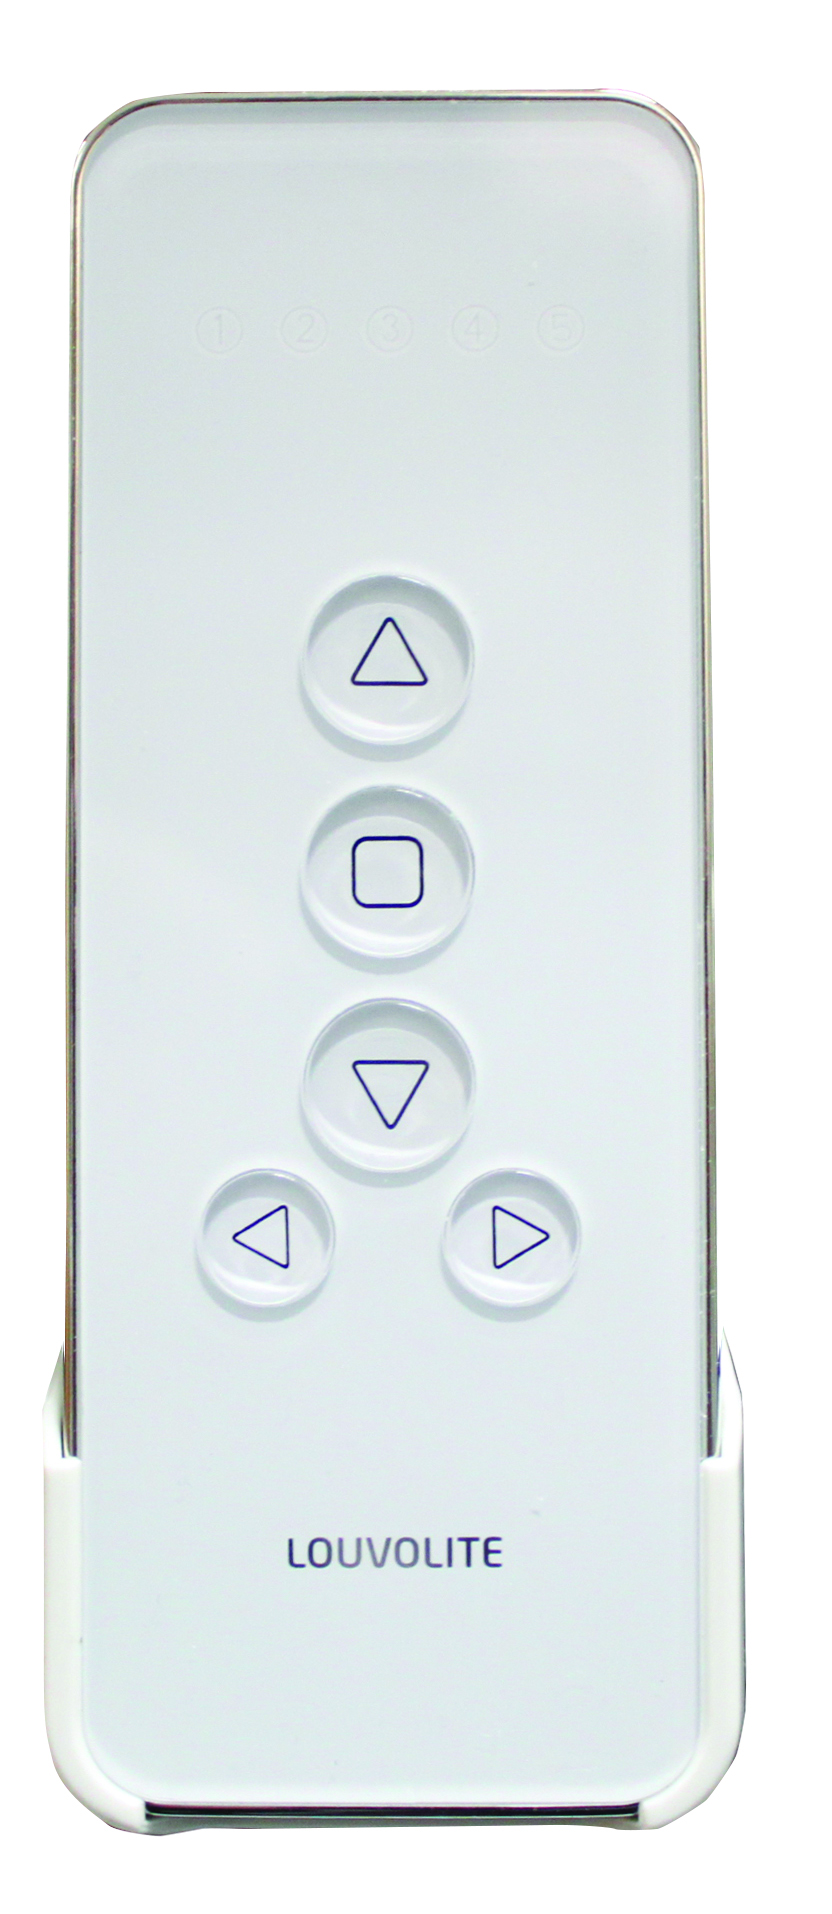 Rechargeable-Motor-5-channel-remote_1L.jpg